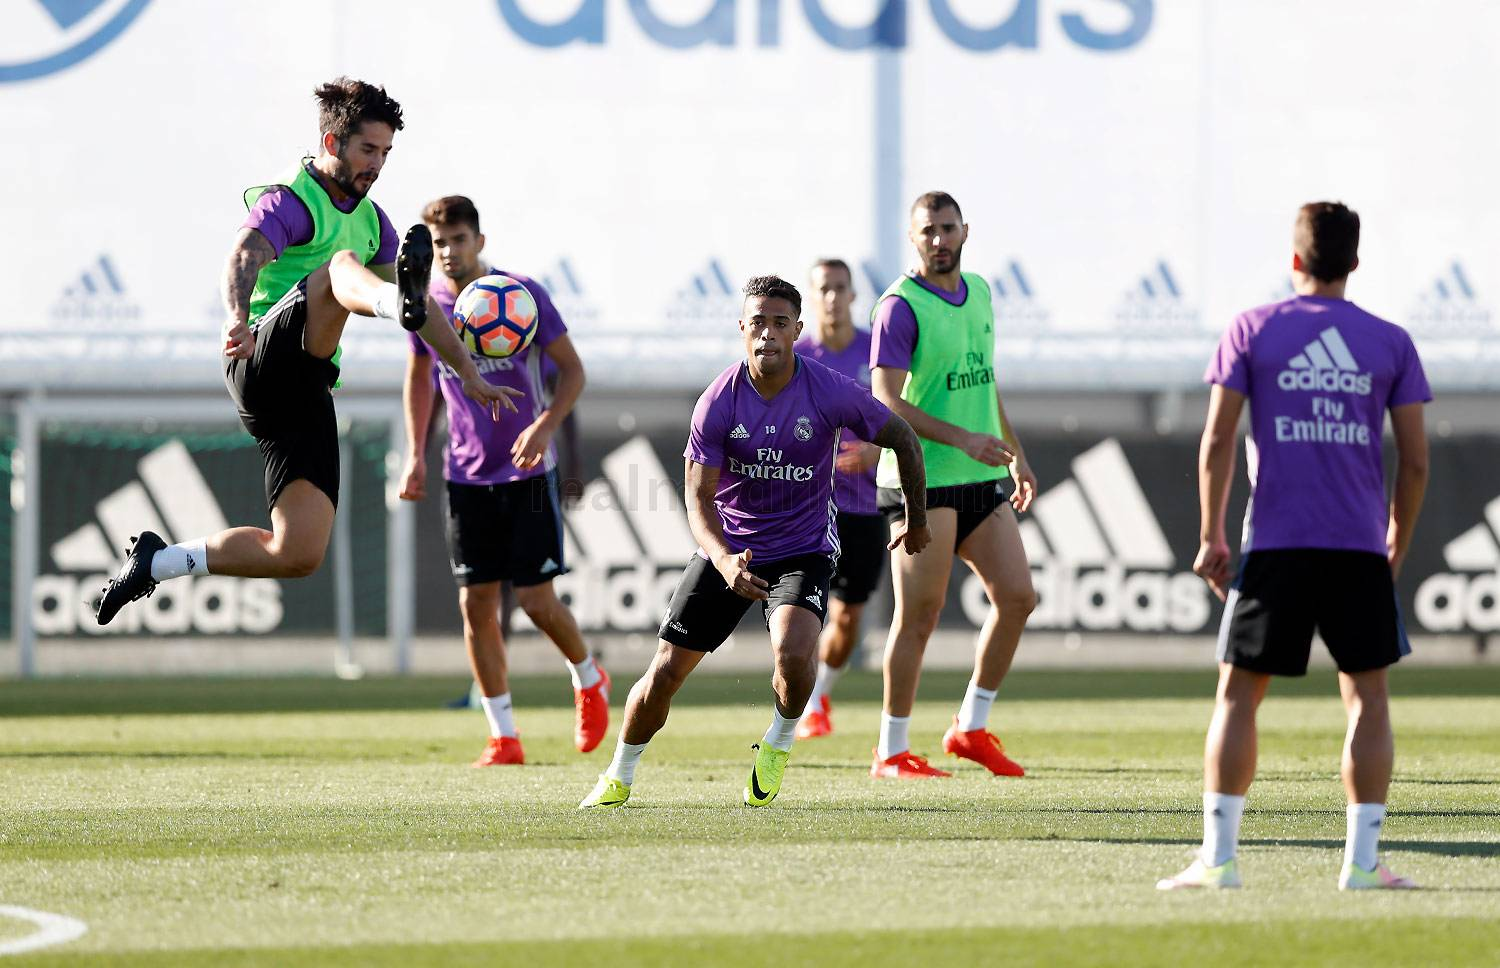 Real Madrid - Entrenamiento del Real Madrid - 11-10-2016